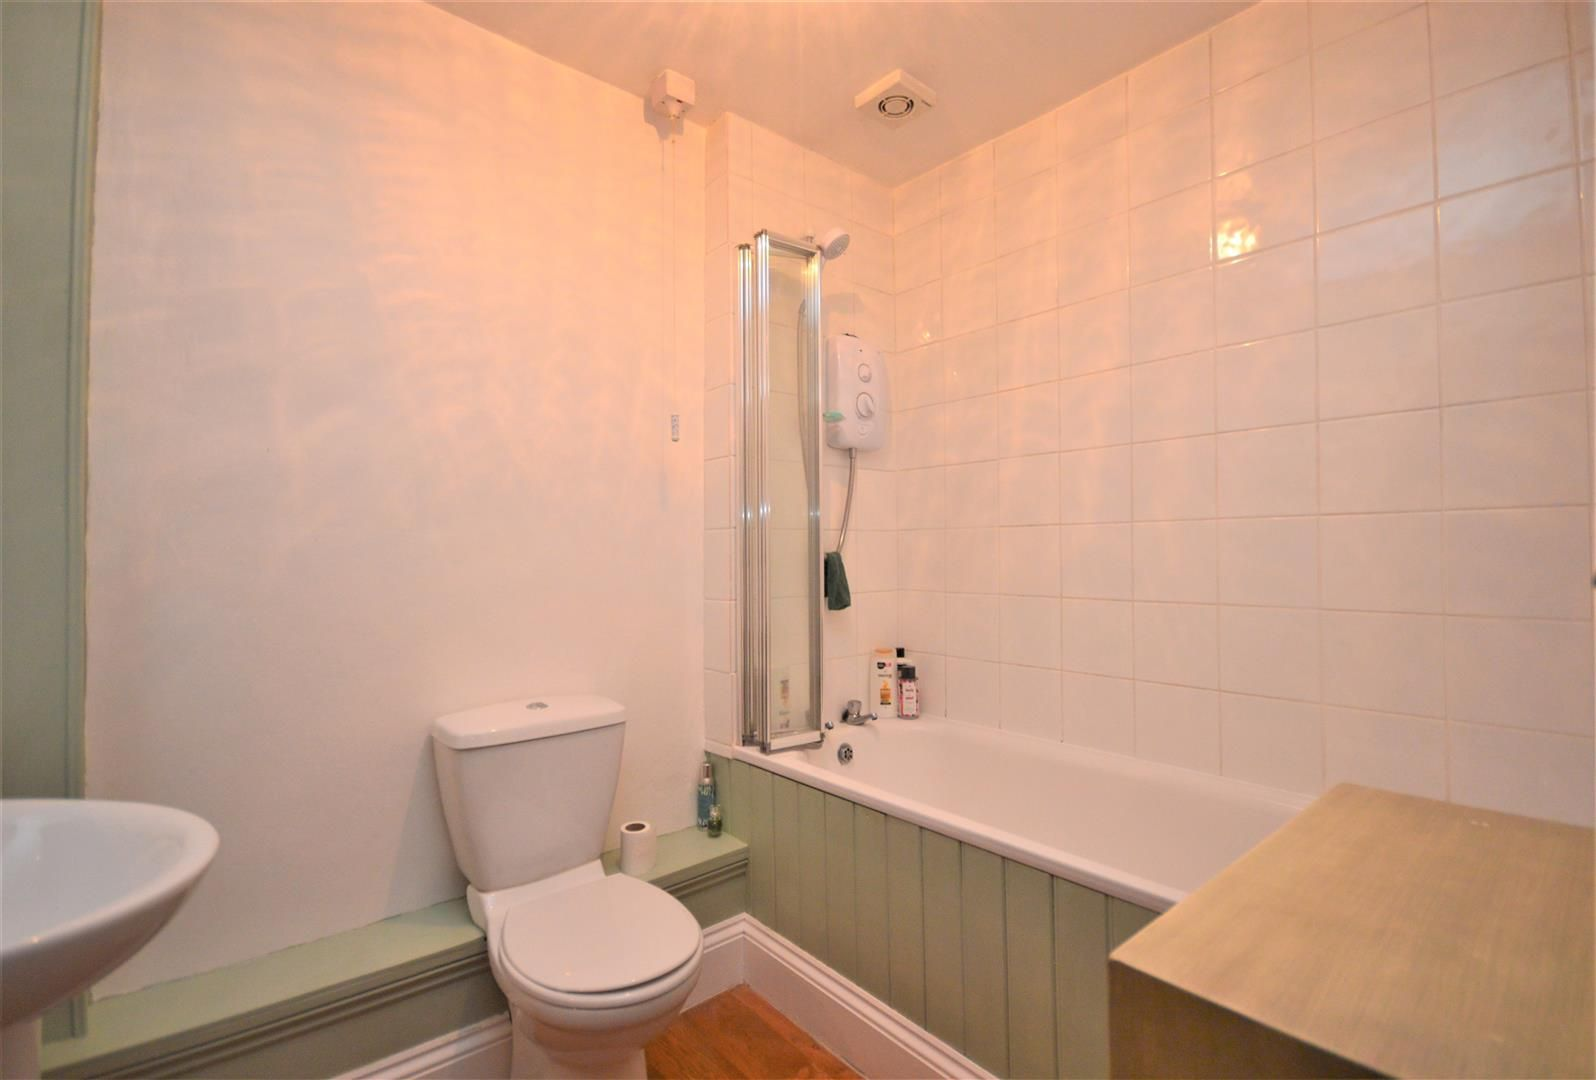 1 bed end-of-terrace for sale in Callow 8